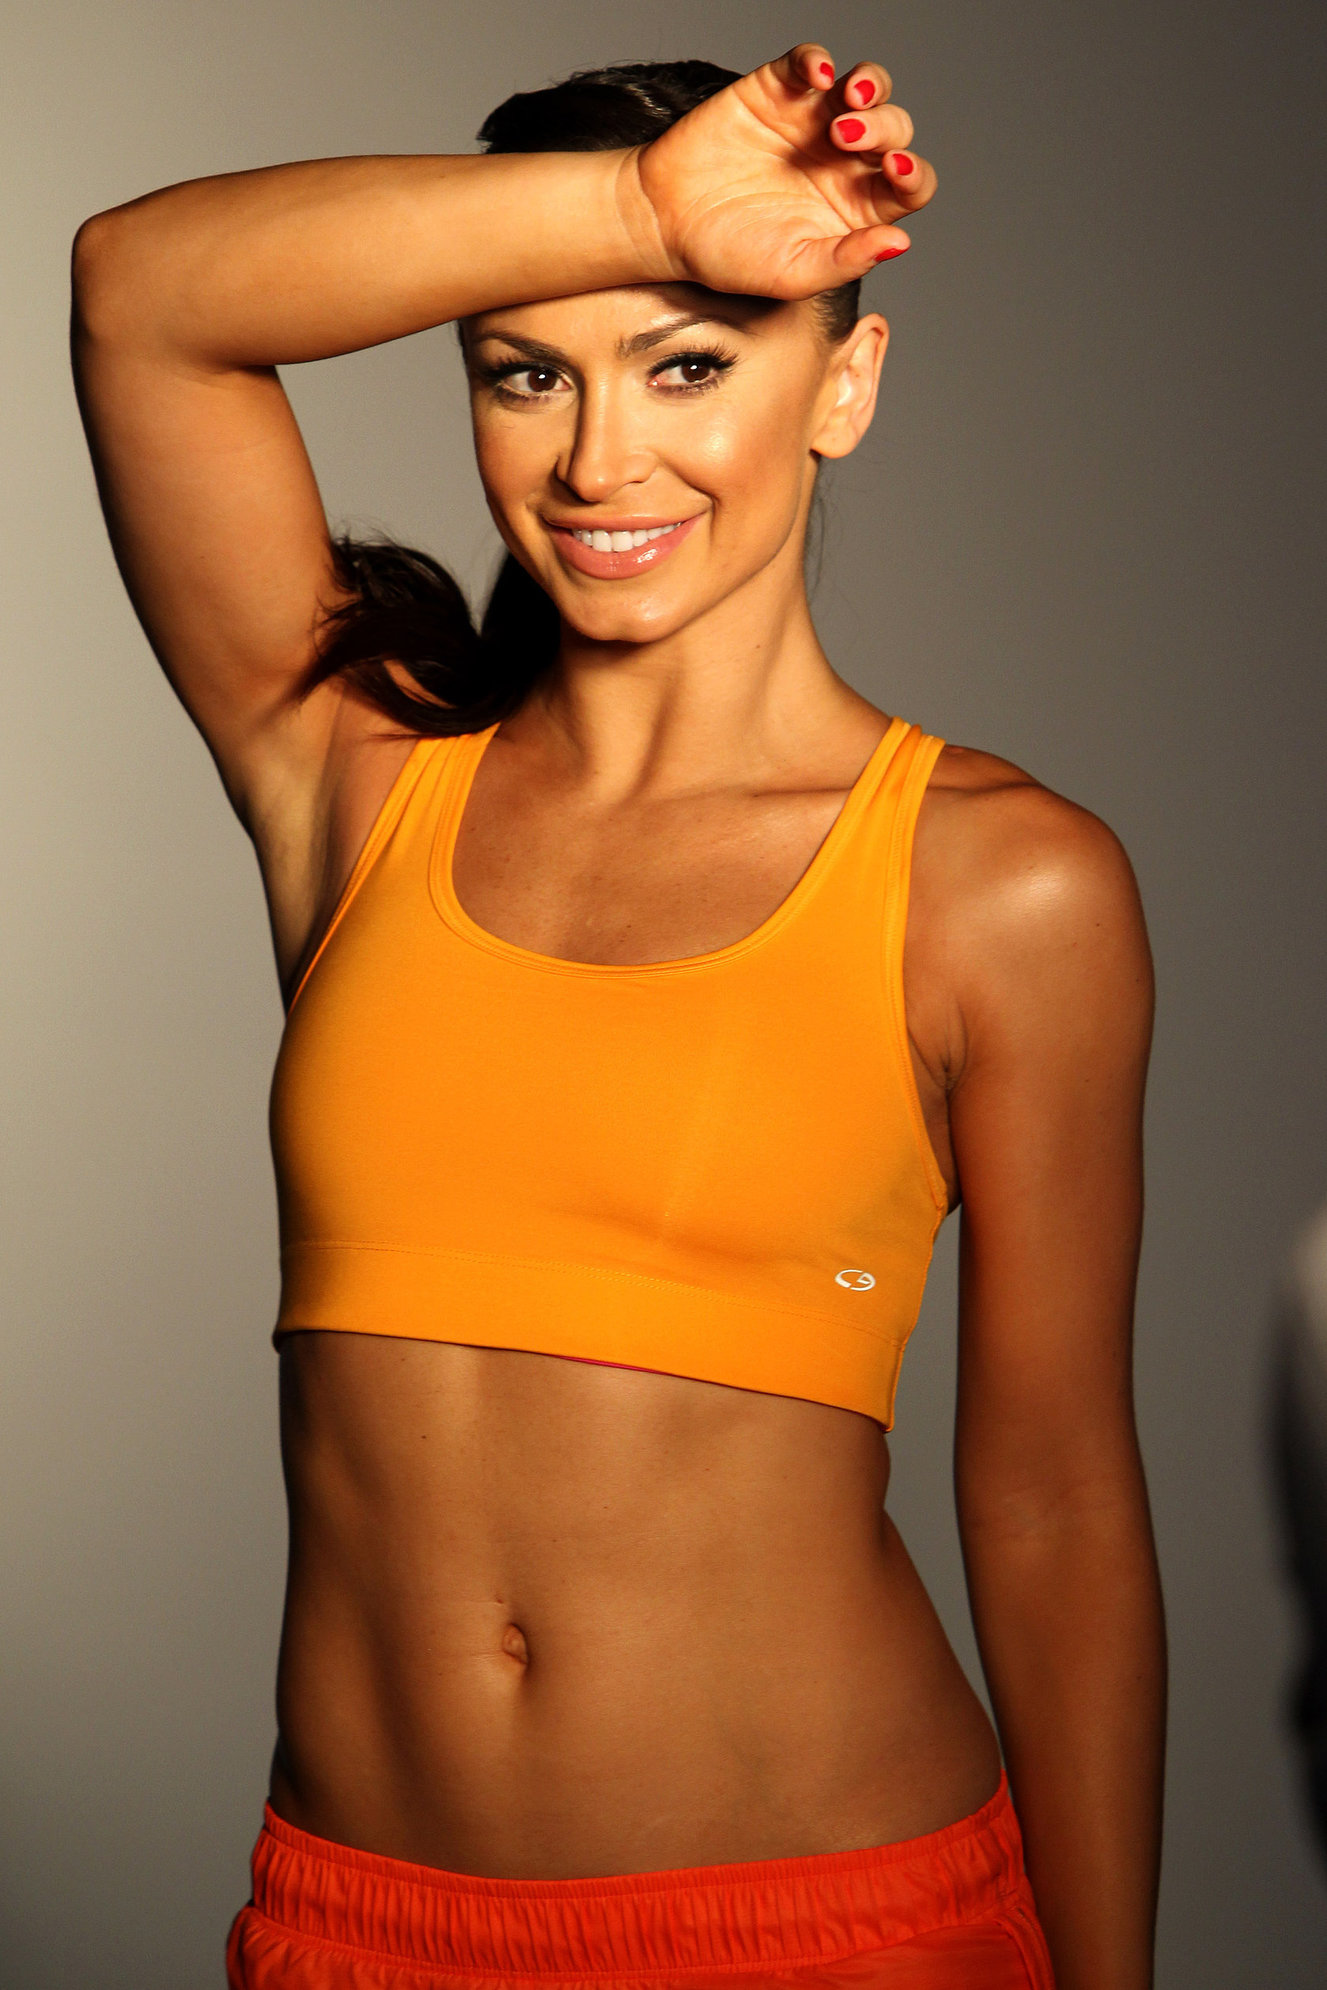 Karina Smirnoff Women's Running Magazine's Cover shoot in L.A. - Jan 8, 2013